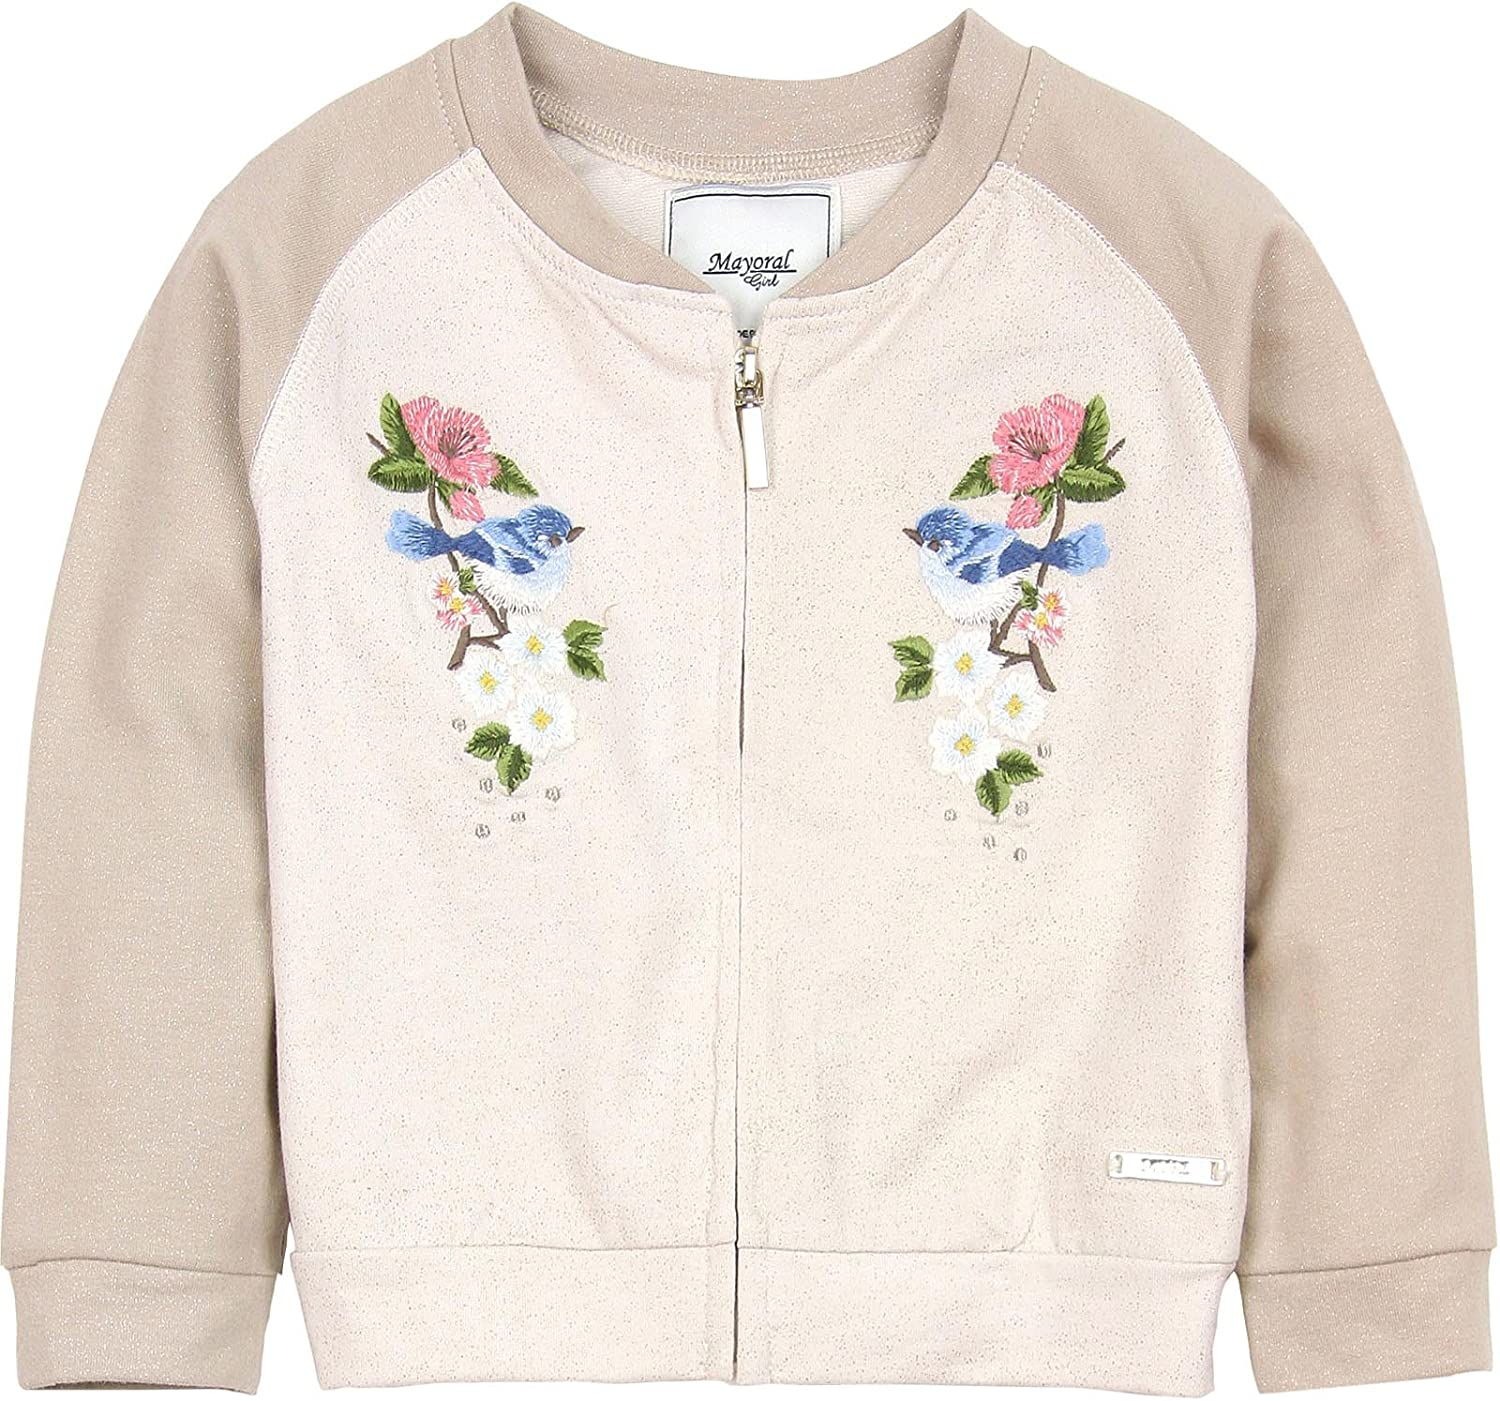 L/&ieserram Toddler Baby Girls Sweatshirts Top Mama s Girl Print Pullover Long Sleeves Crewneck Shirt Blouse Tops Outfit 0-6Years Clothes